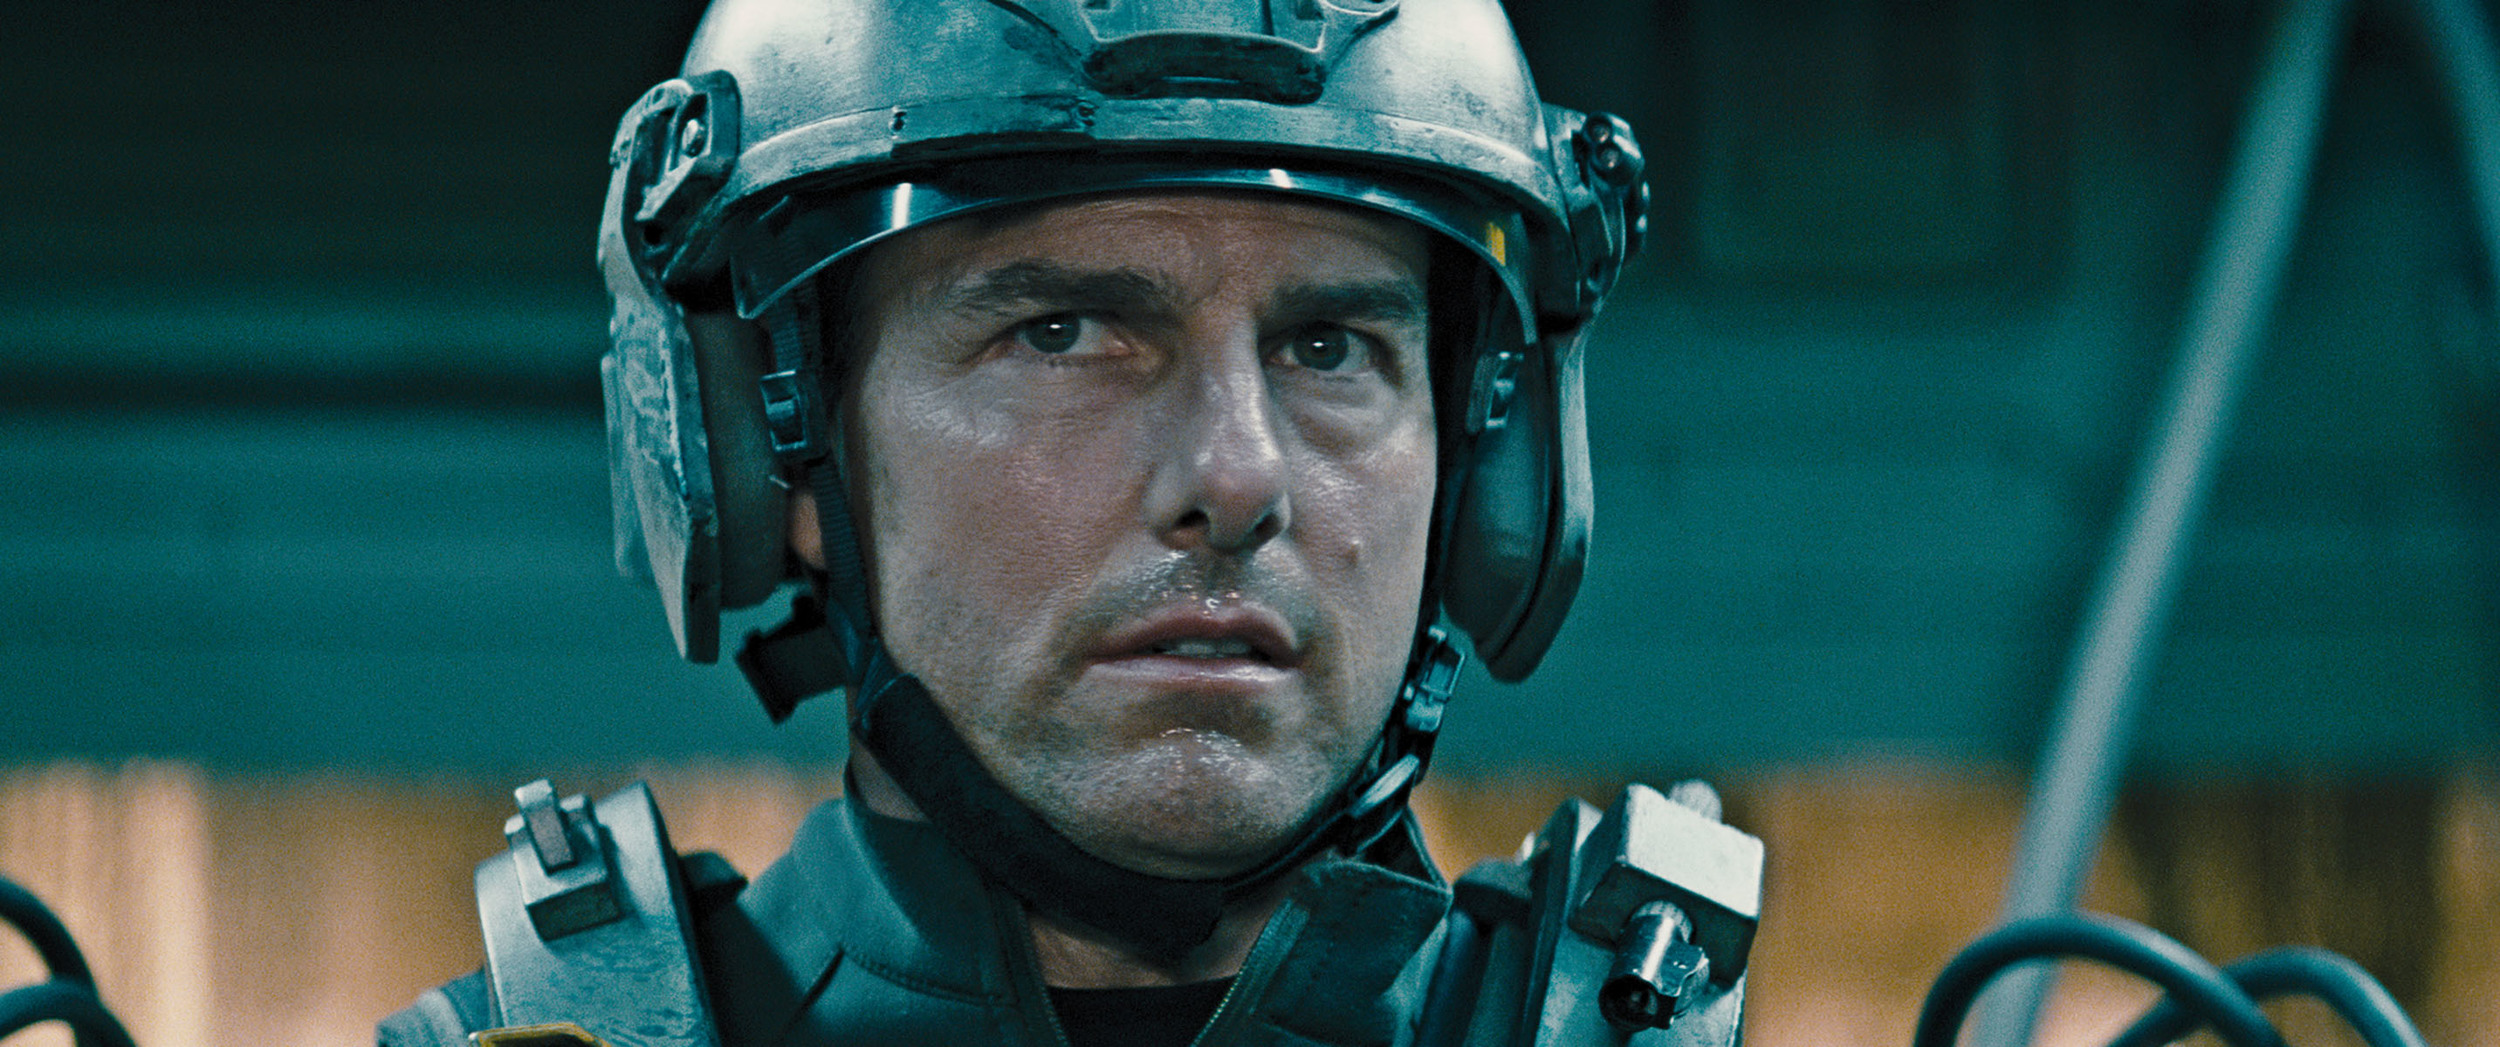 Edge of Tomorrow  boasts Tom Cruise's most varied and appealing performance in years.